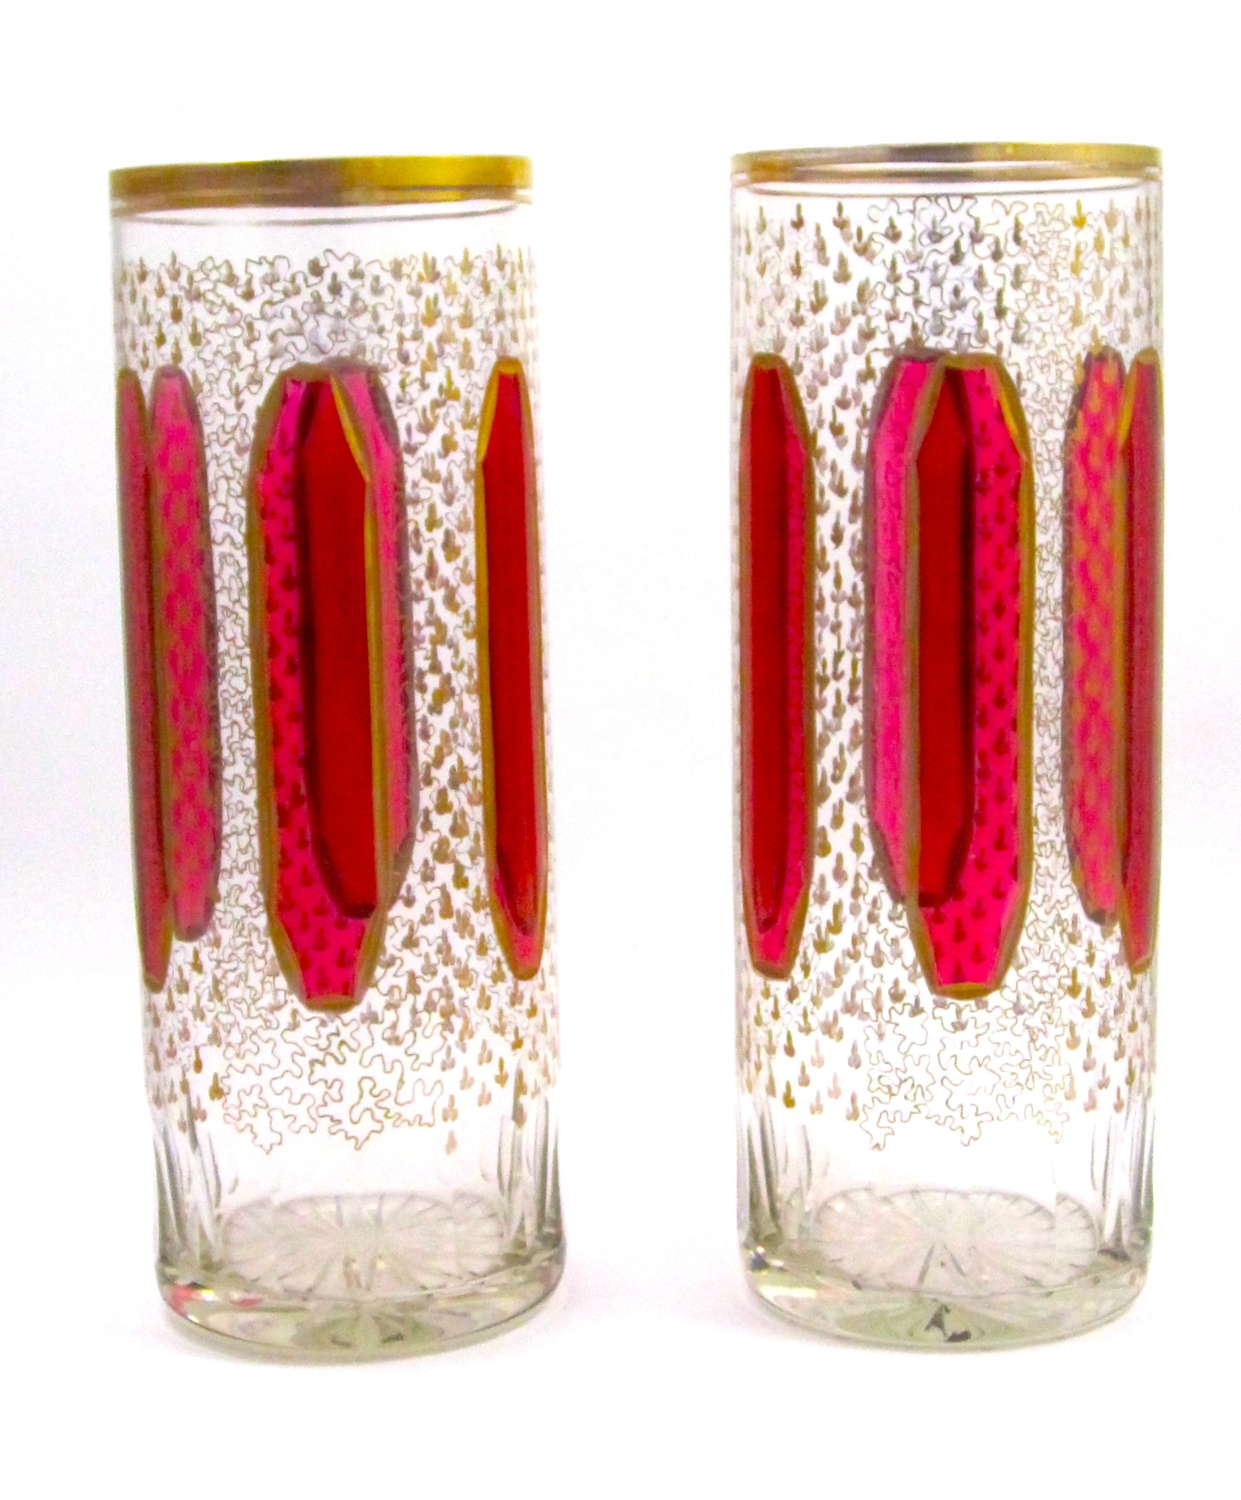 Pair of Antique BohemianGlass Vases with Ruby RedCabochon Design.